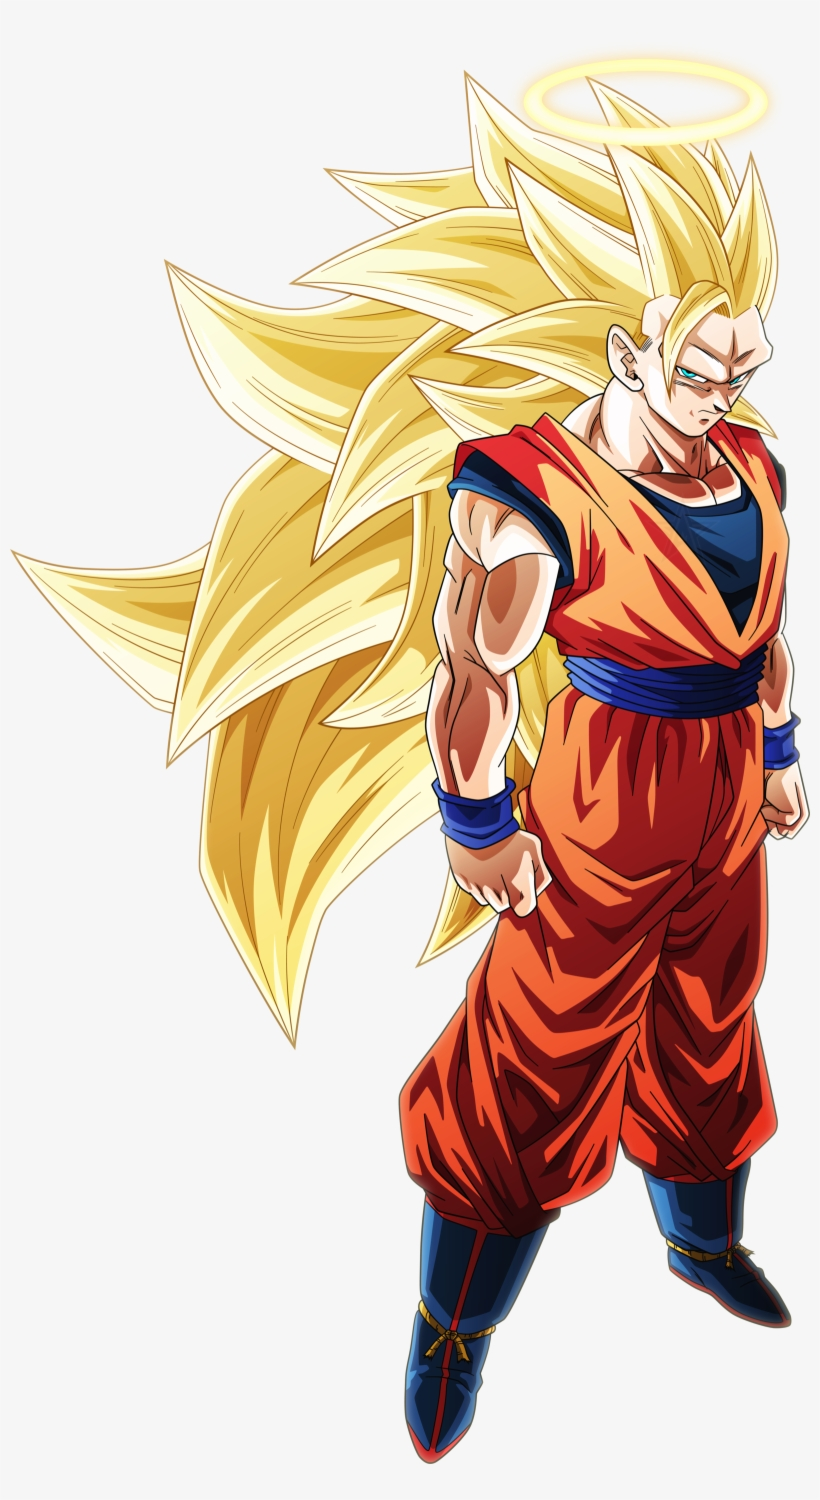 Super Saiyan 3 Goku Png Clip Royalty Free Stock Super Saiyan 3 Goku Angel Free Transparent Png Download Pngkey